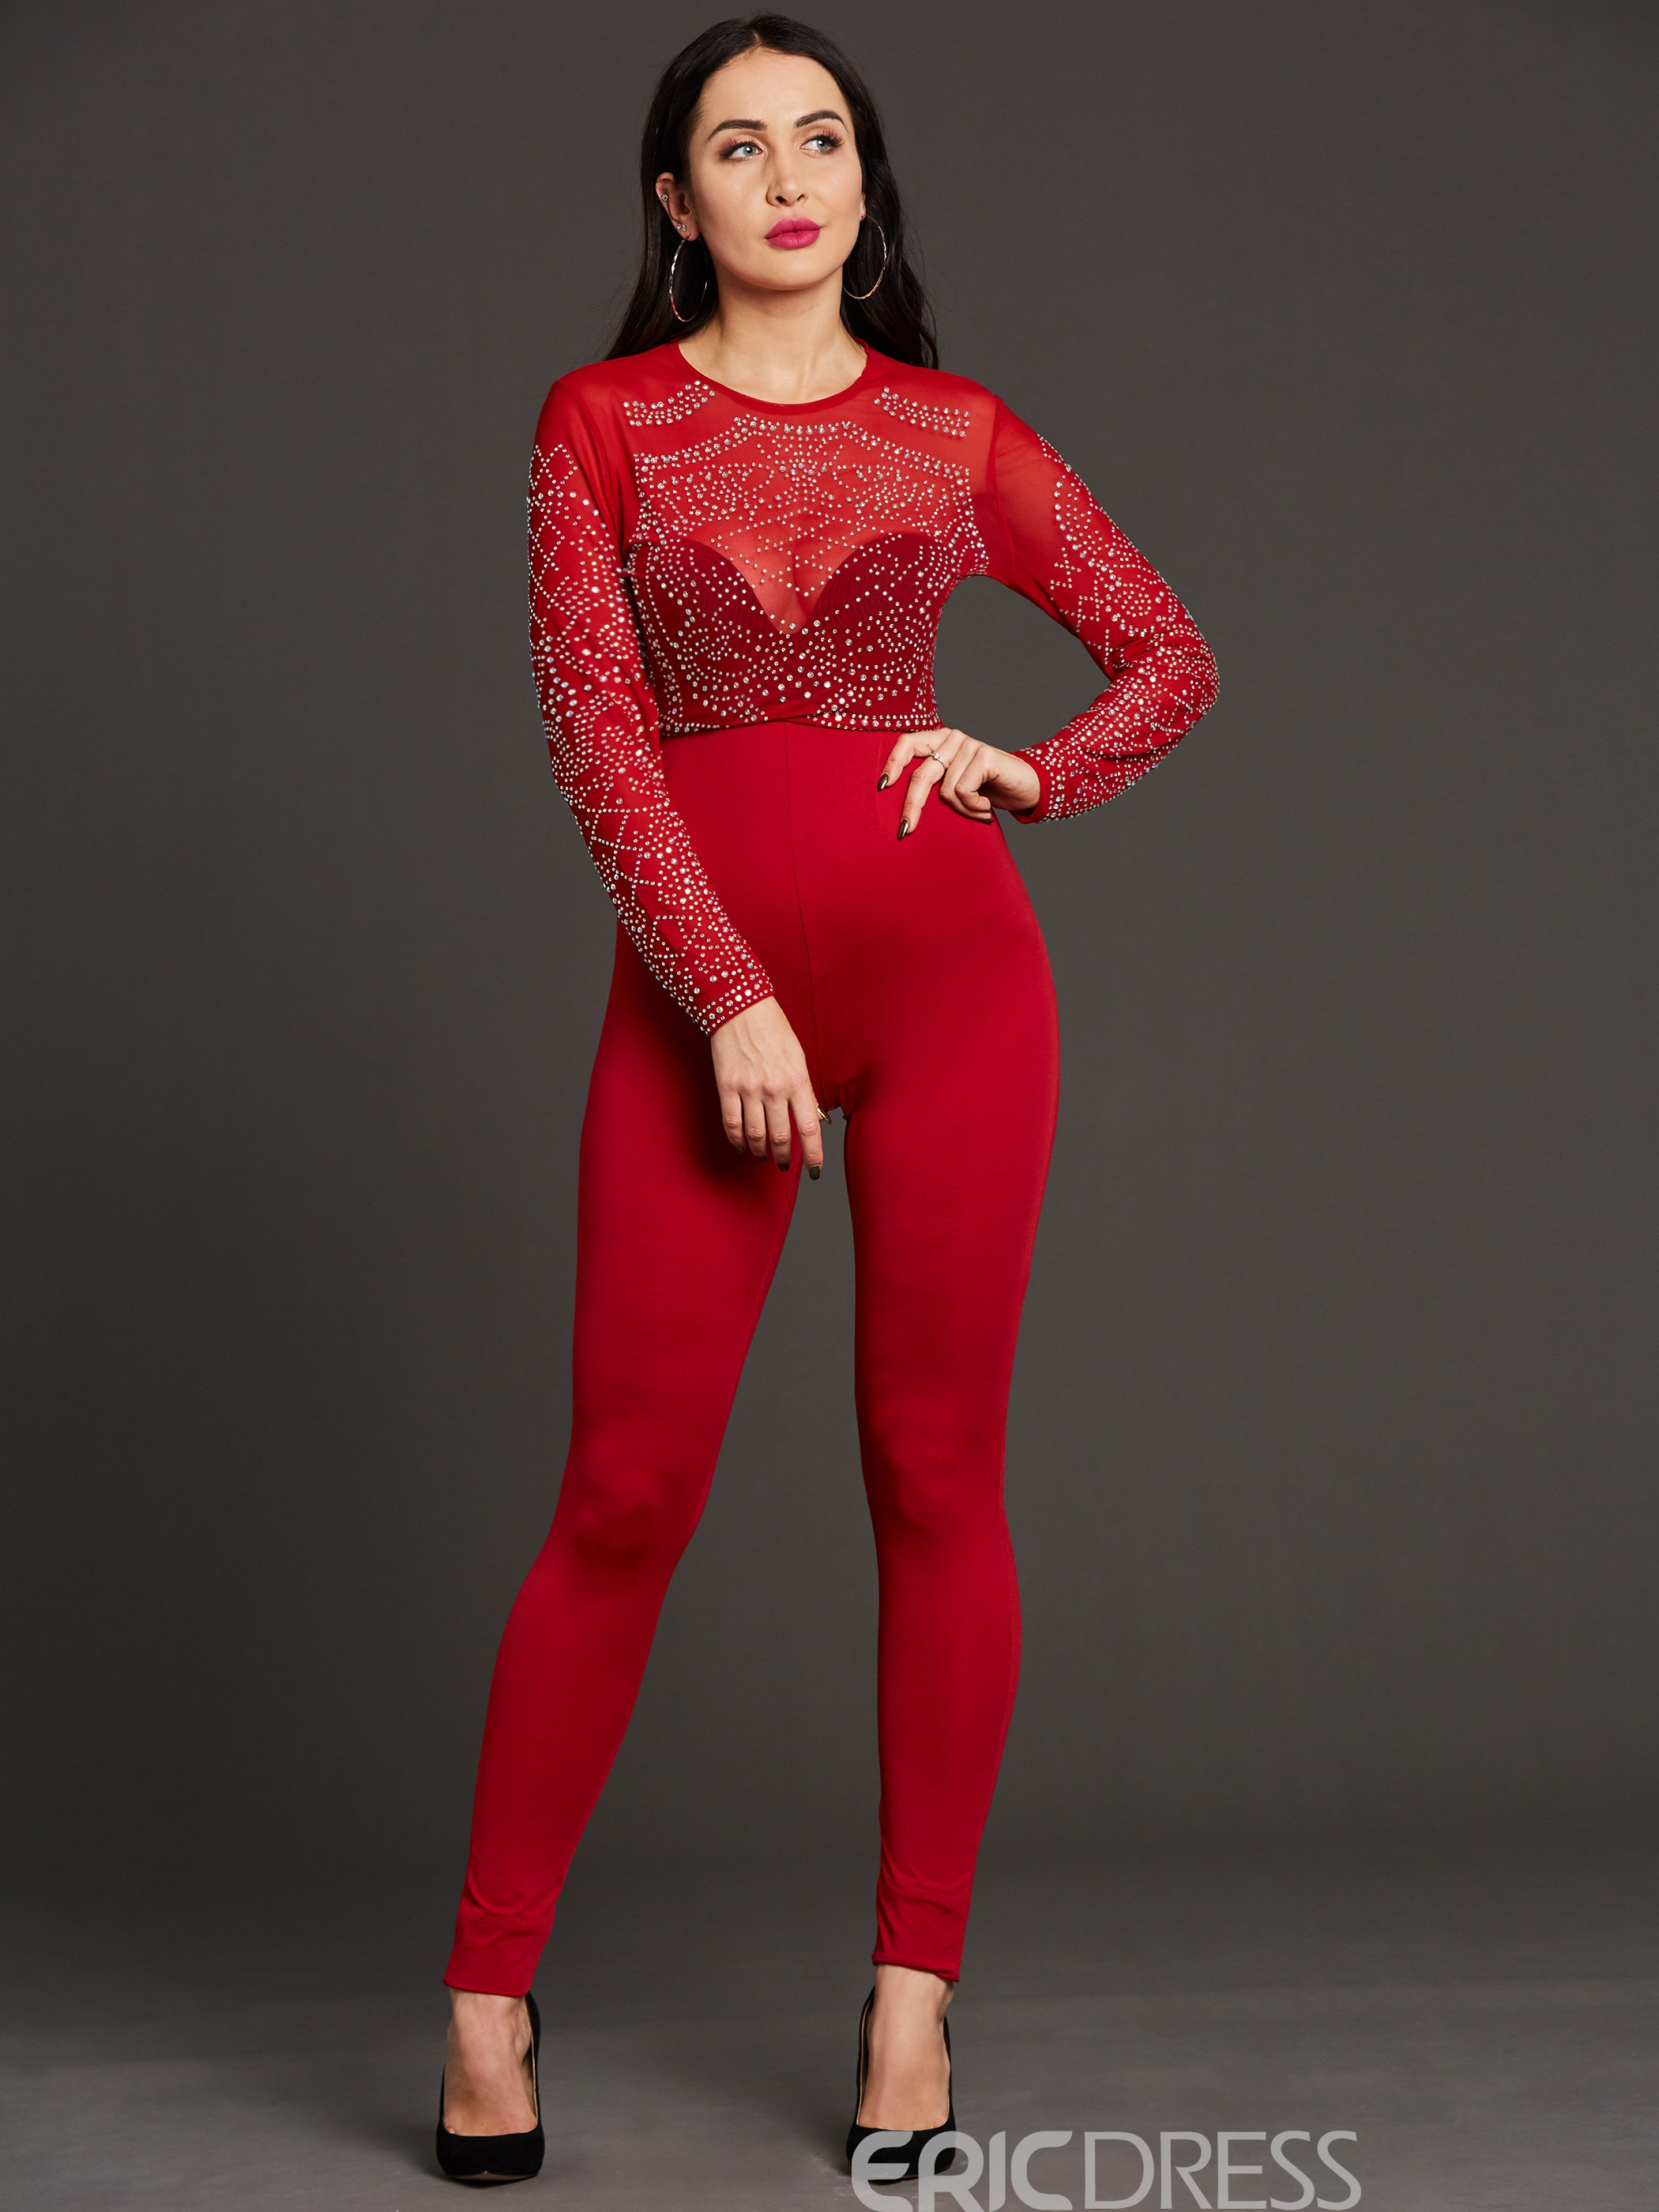 Ericdress Unique Decoration Jumpsuits Pants